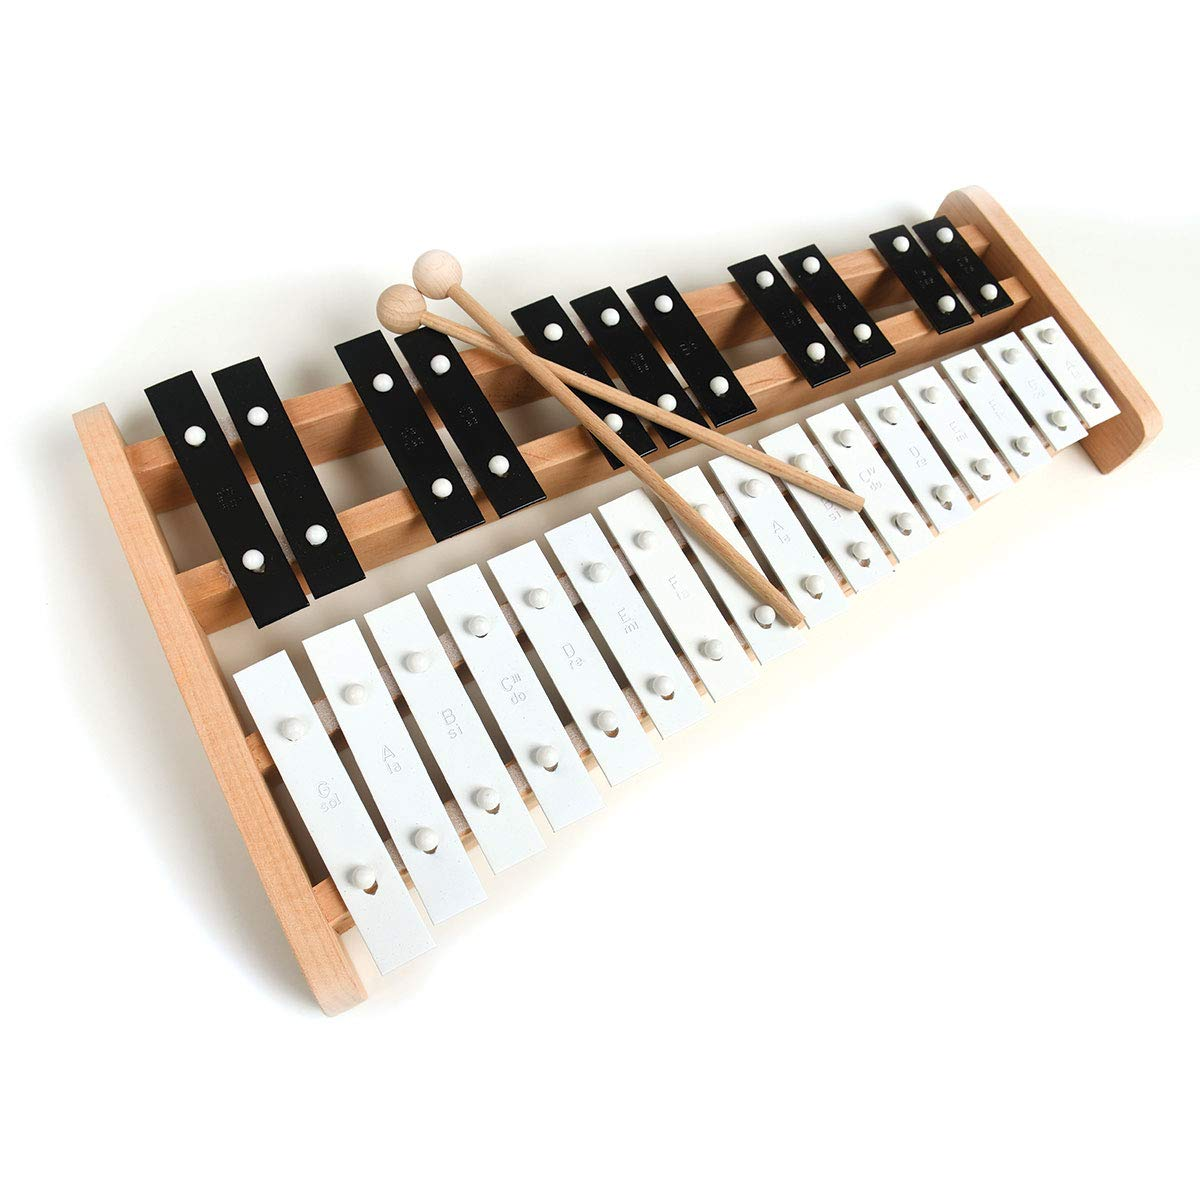 Professional Wooden Soprano Full Size Glockenspiel Xylophone with 27 Metal Keys for Adults & Kids - Includes 2 Wooden Beaters by Cara & Co